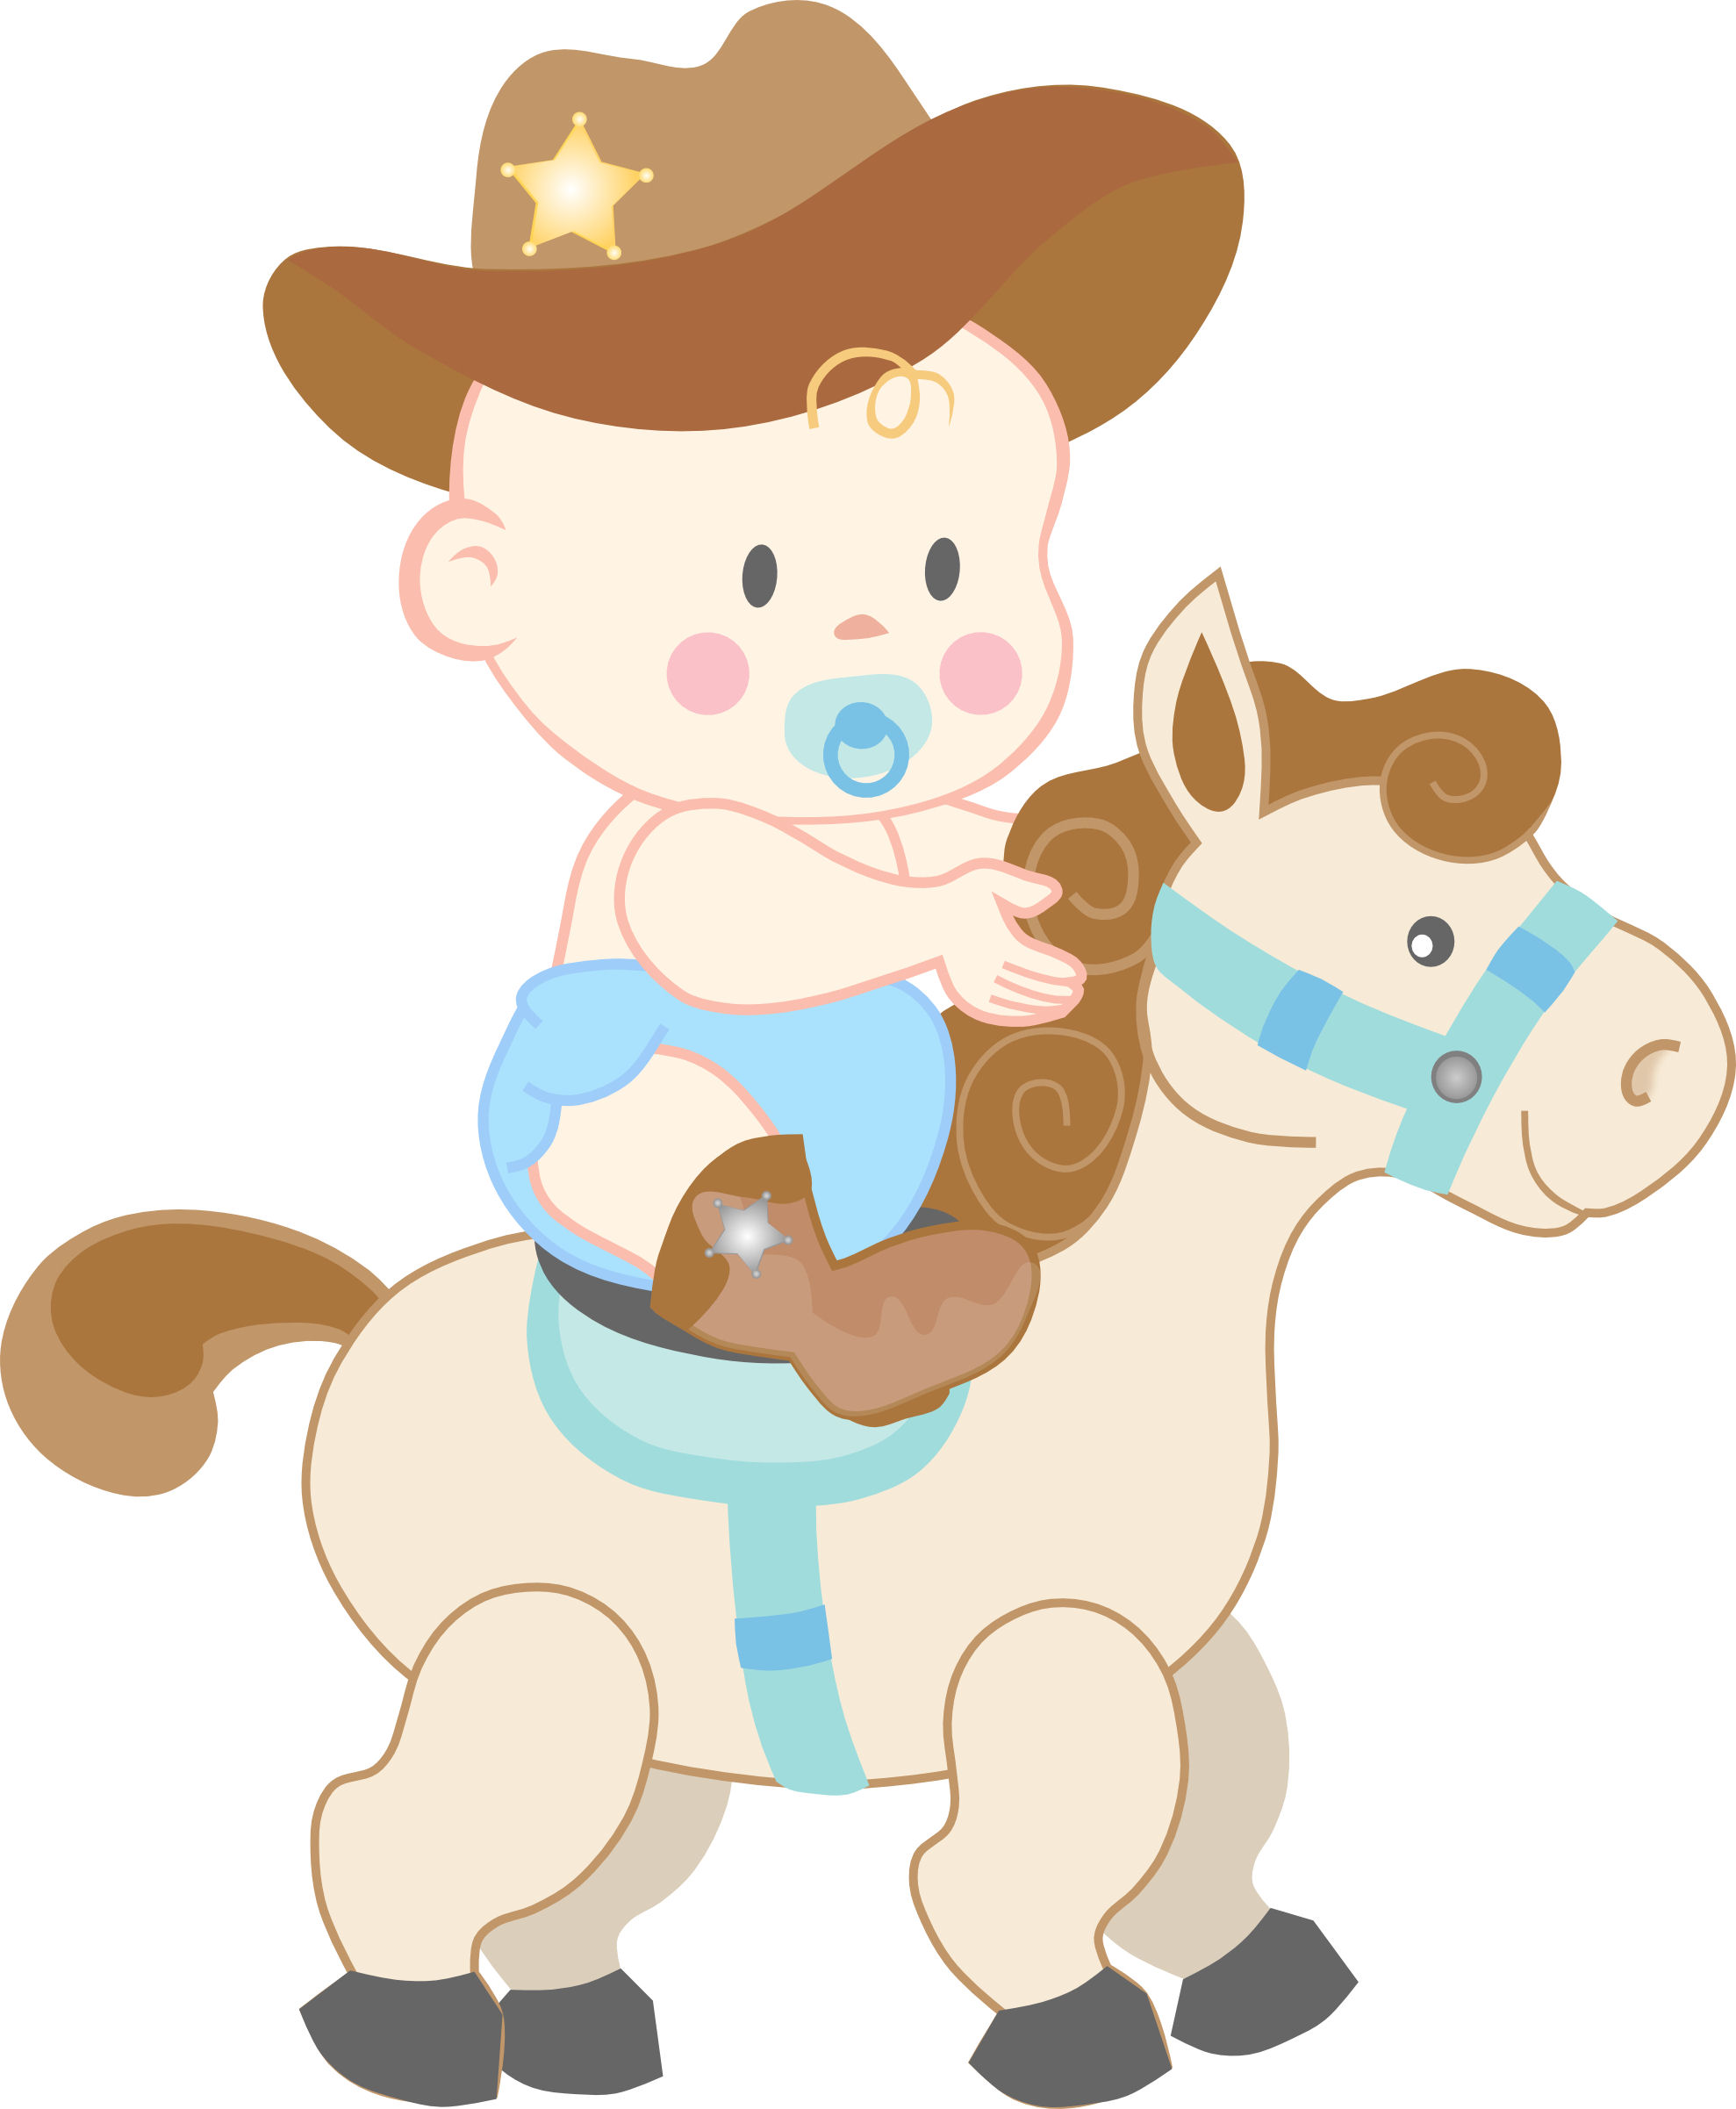 Free Cowboy Baby Cliparts, Download Free Clip Art, Free Clip Art on.